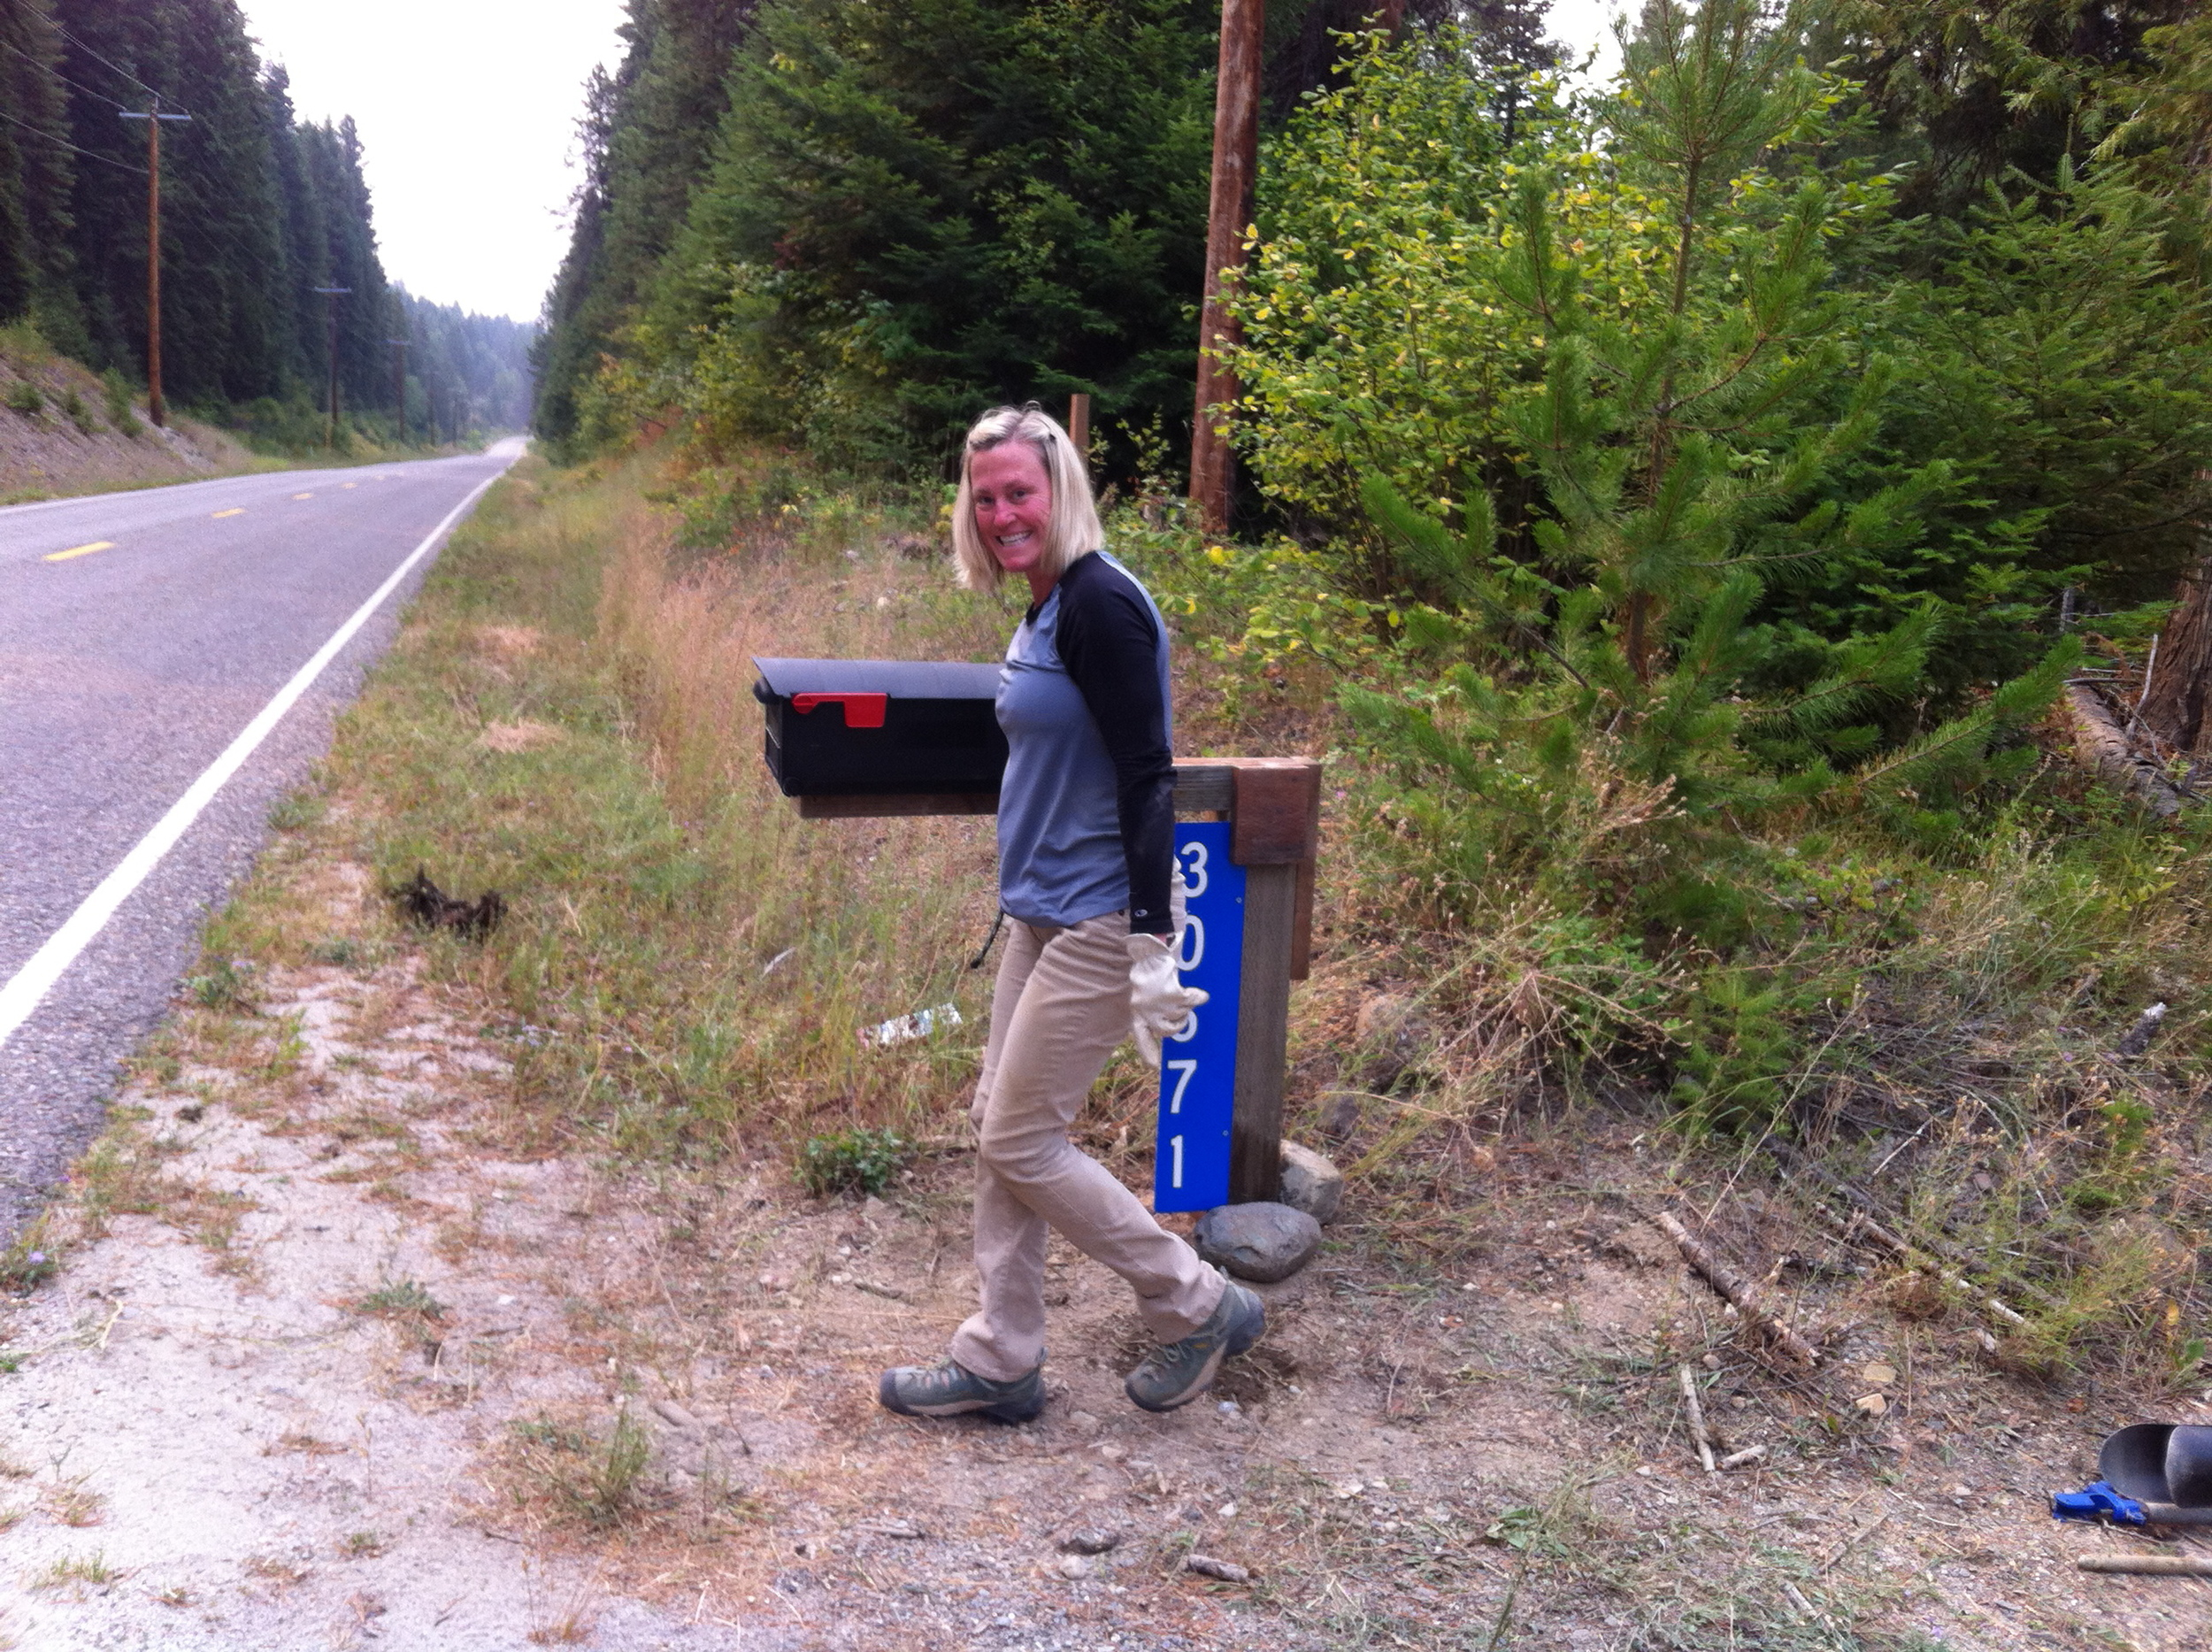 We planted a mailbox, which makes us official! Digging through dry rocky soil is no joke!